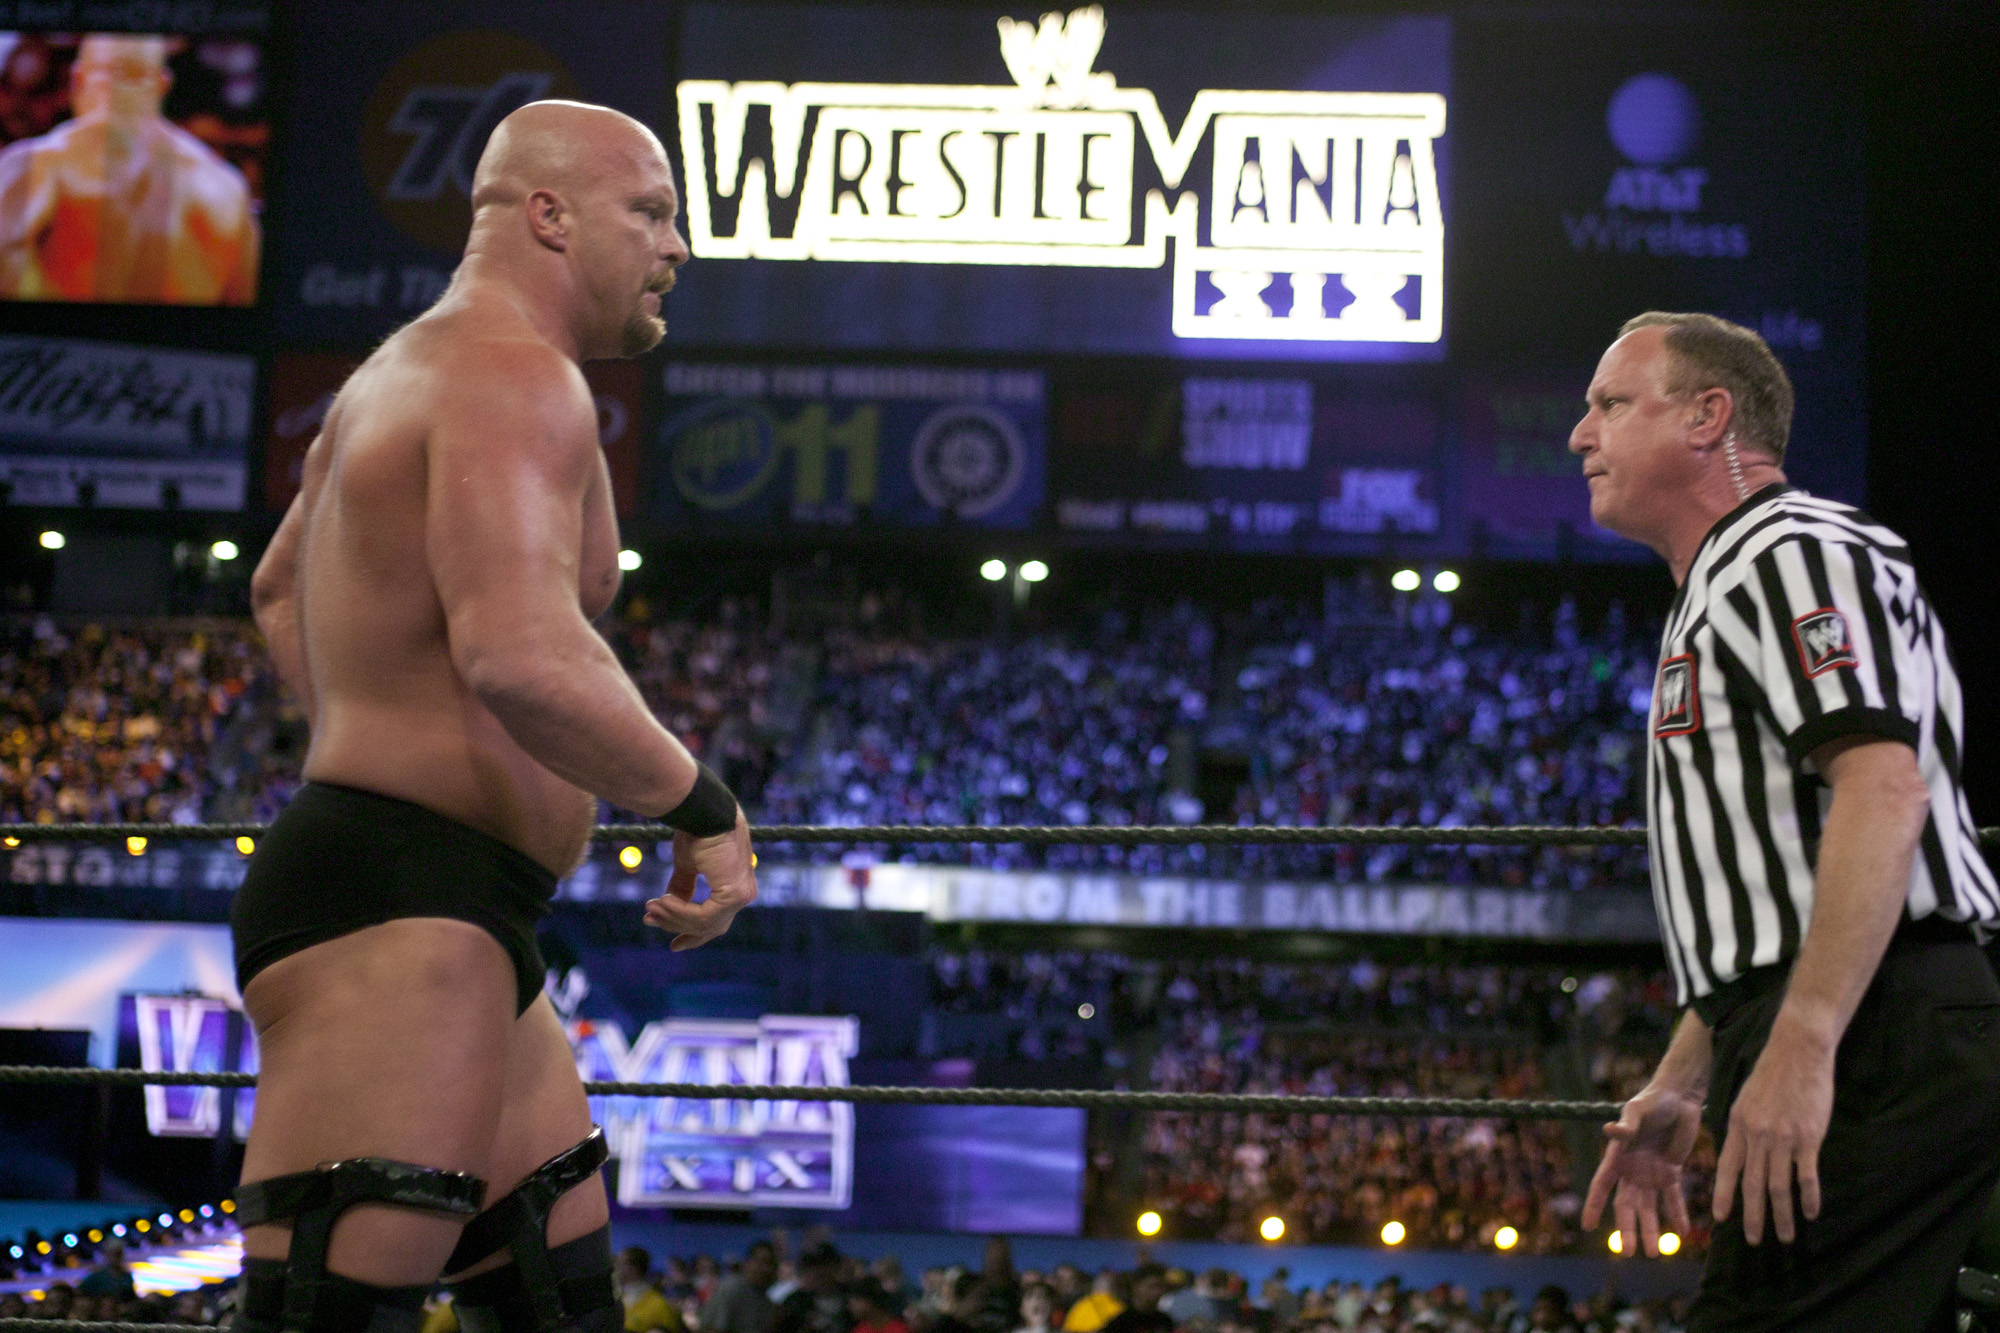 Stone Cold Steve Austin at his final match at WrestleMania XIX on March 30, 2003